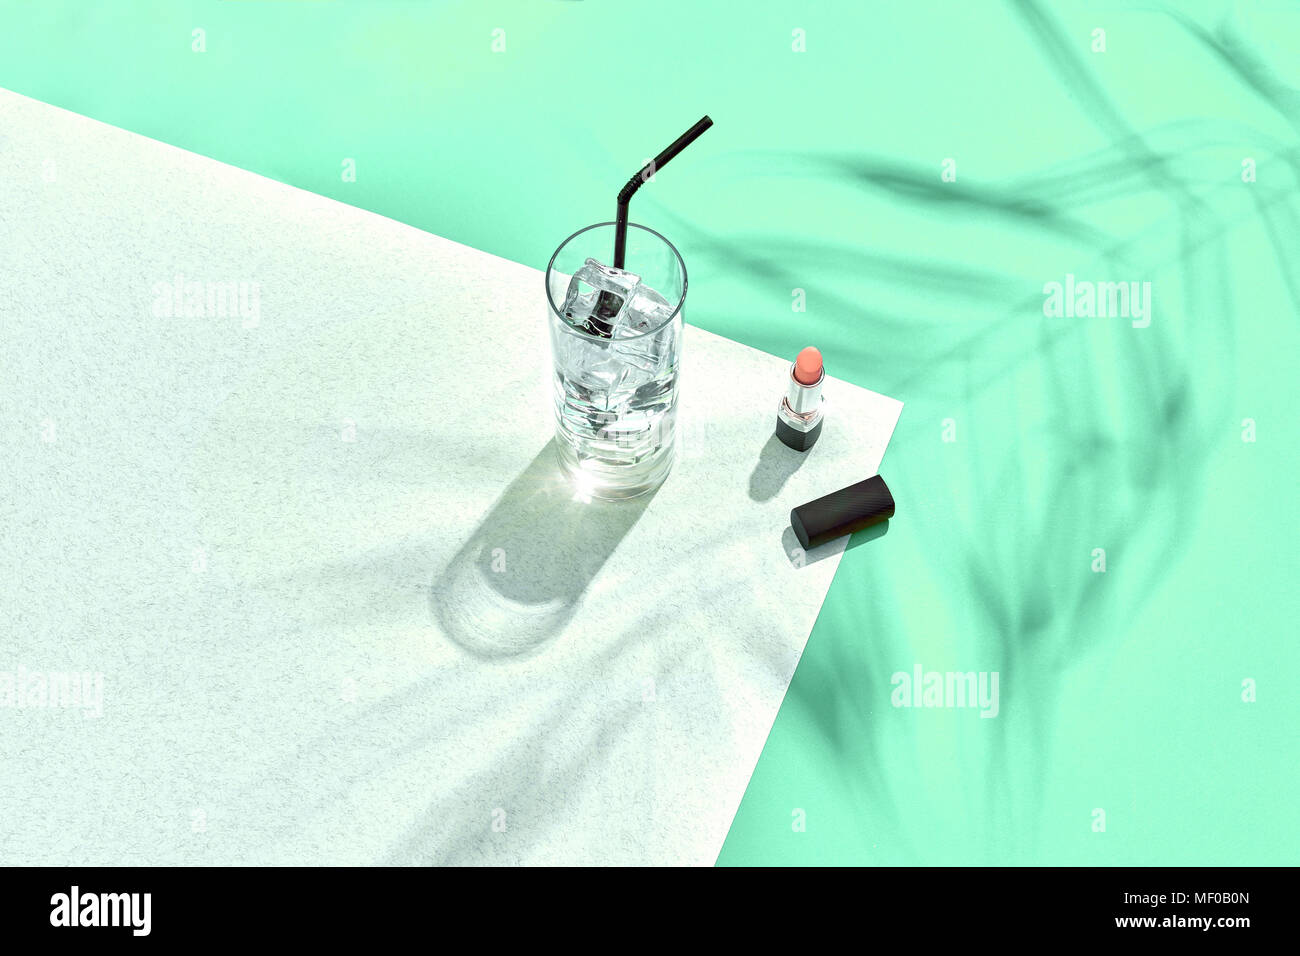 High angle view of lipstick and drinking glass with ice on table. Blue and white background with shadow from a palm leaf - Stock Image